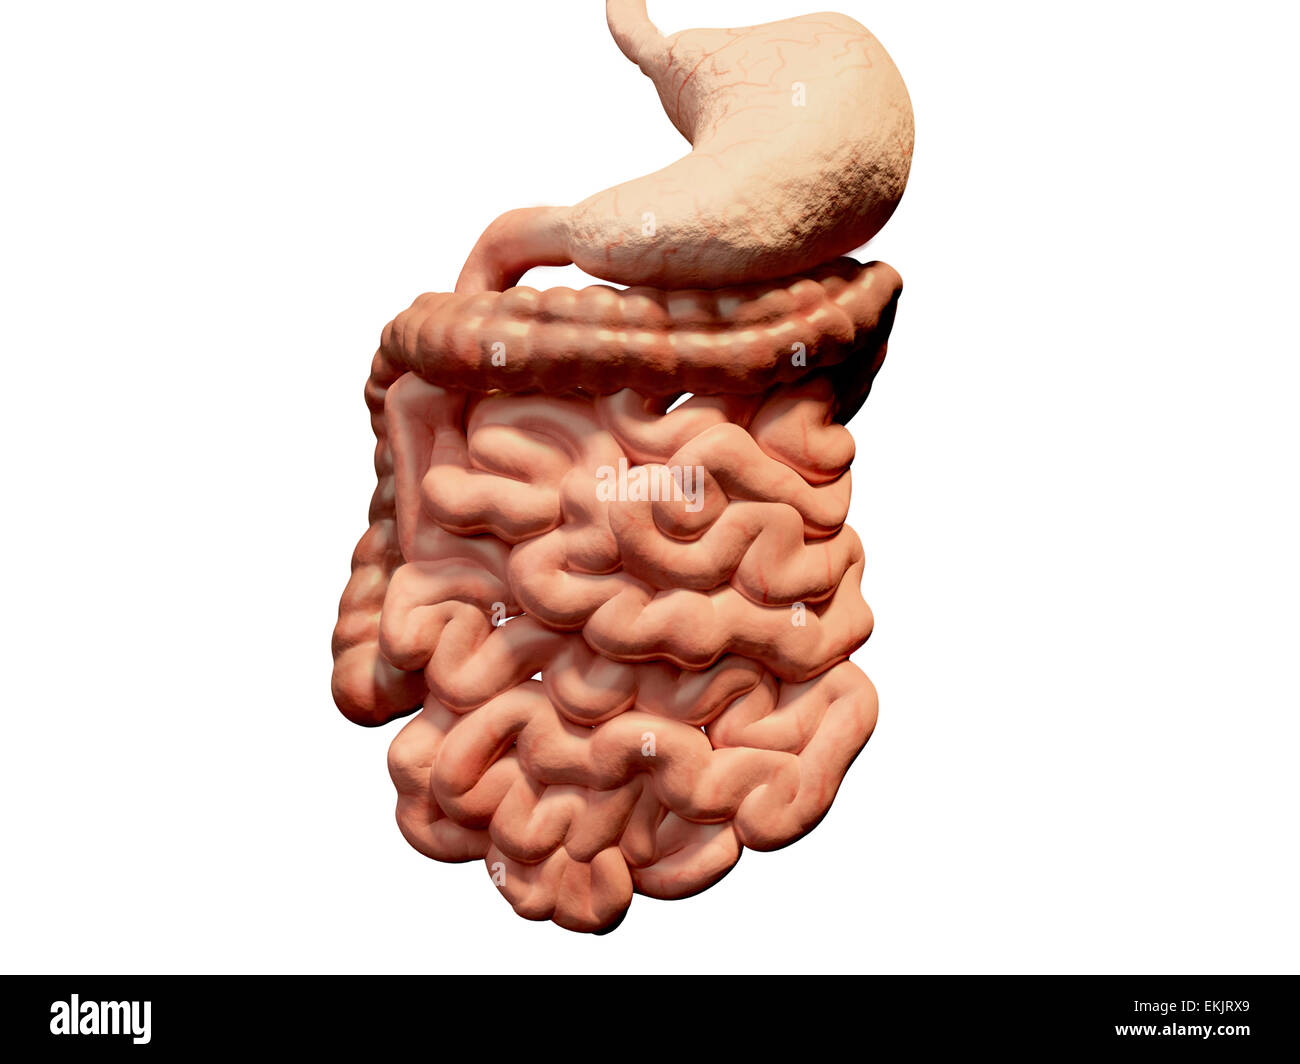 Gastrointestinal Tract Stock Photos Gastrointestinal Tract Stock